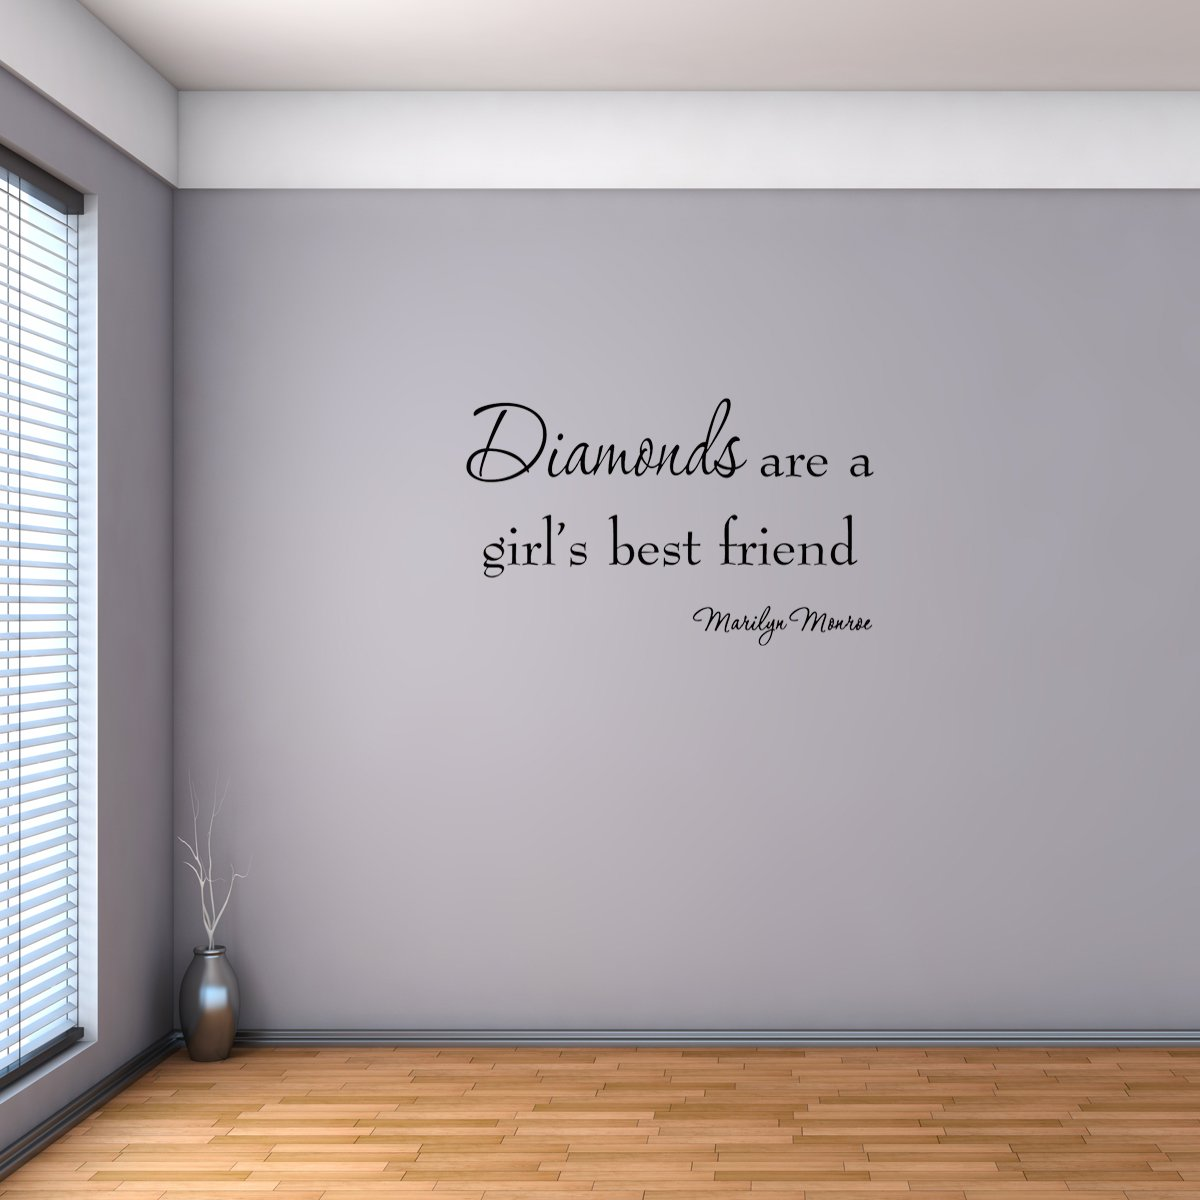 VWAQ Diamonds Are a Girl's Best Friend Marilyn Monroe Vinyl Wall Decal - VWAQ Vinyl Wall Art Quotes and Prints